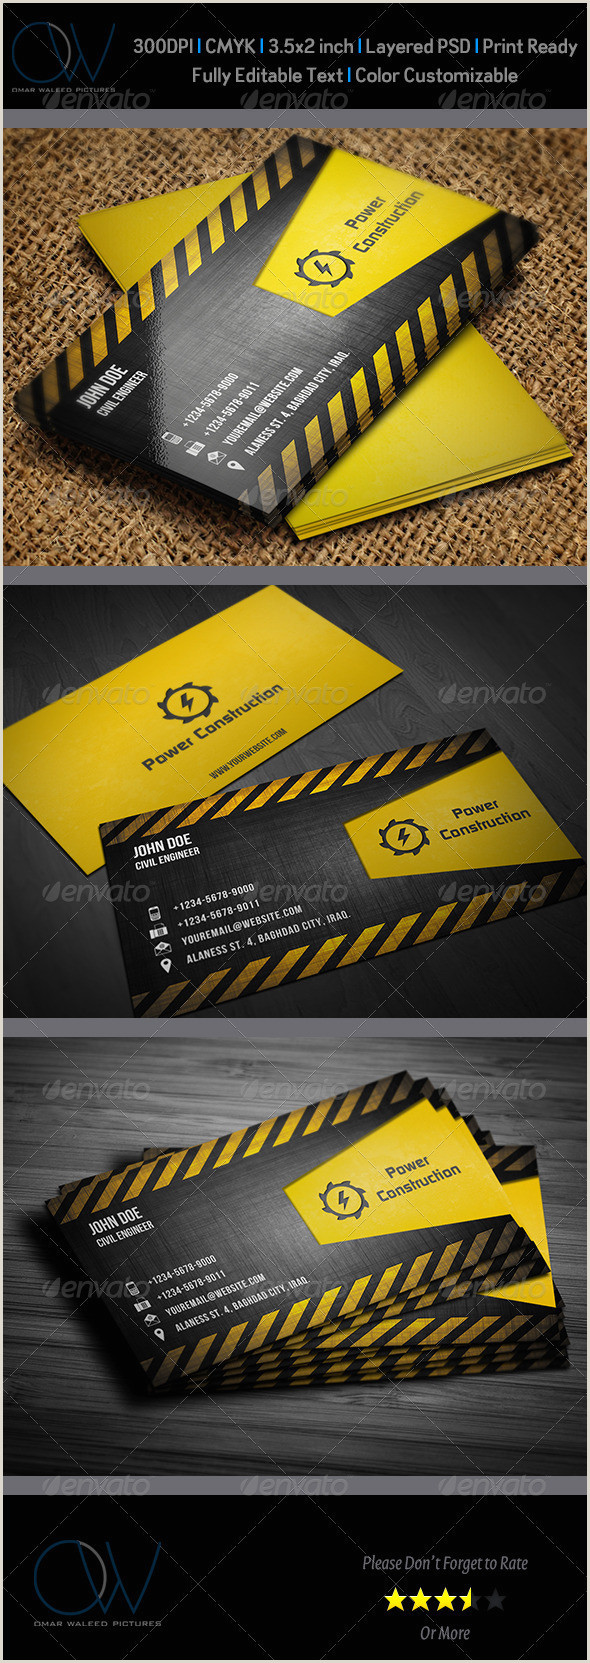 Best Business Card Design 2020 2020 S Best Selling Creative Business Card Templates & Designs